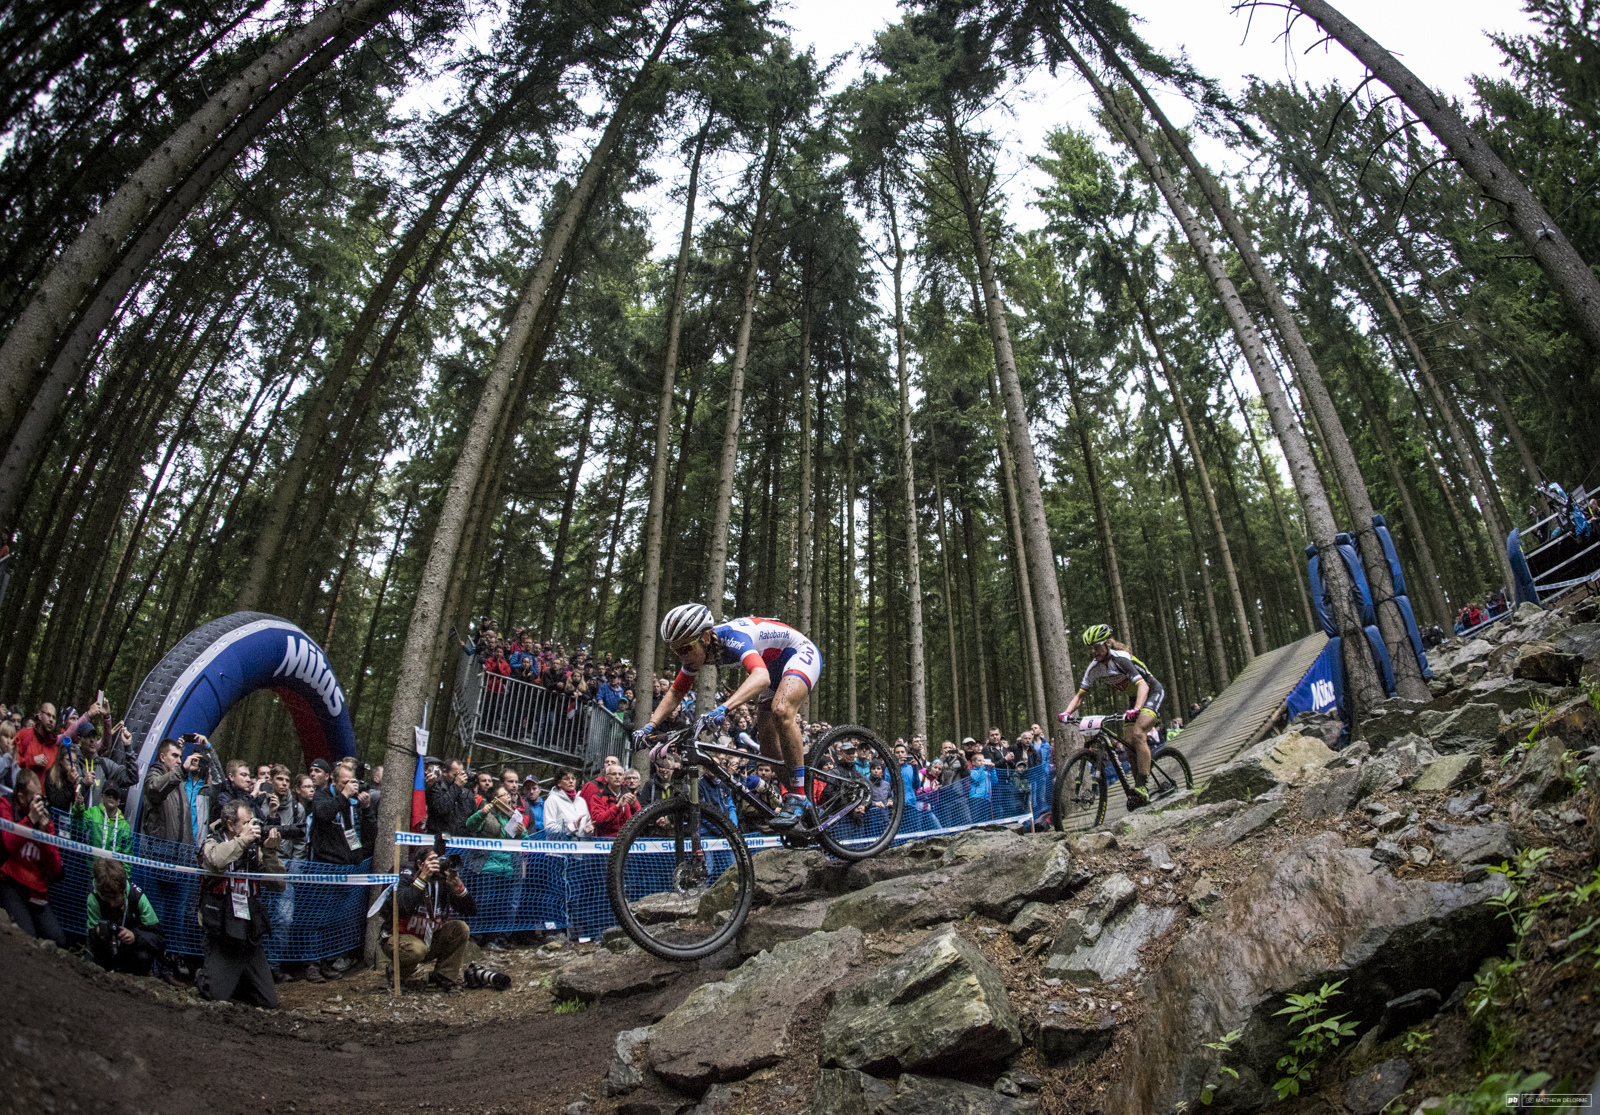 Pauline Prevot kept it going to third place today.